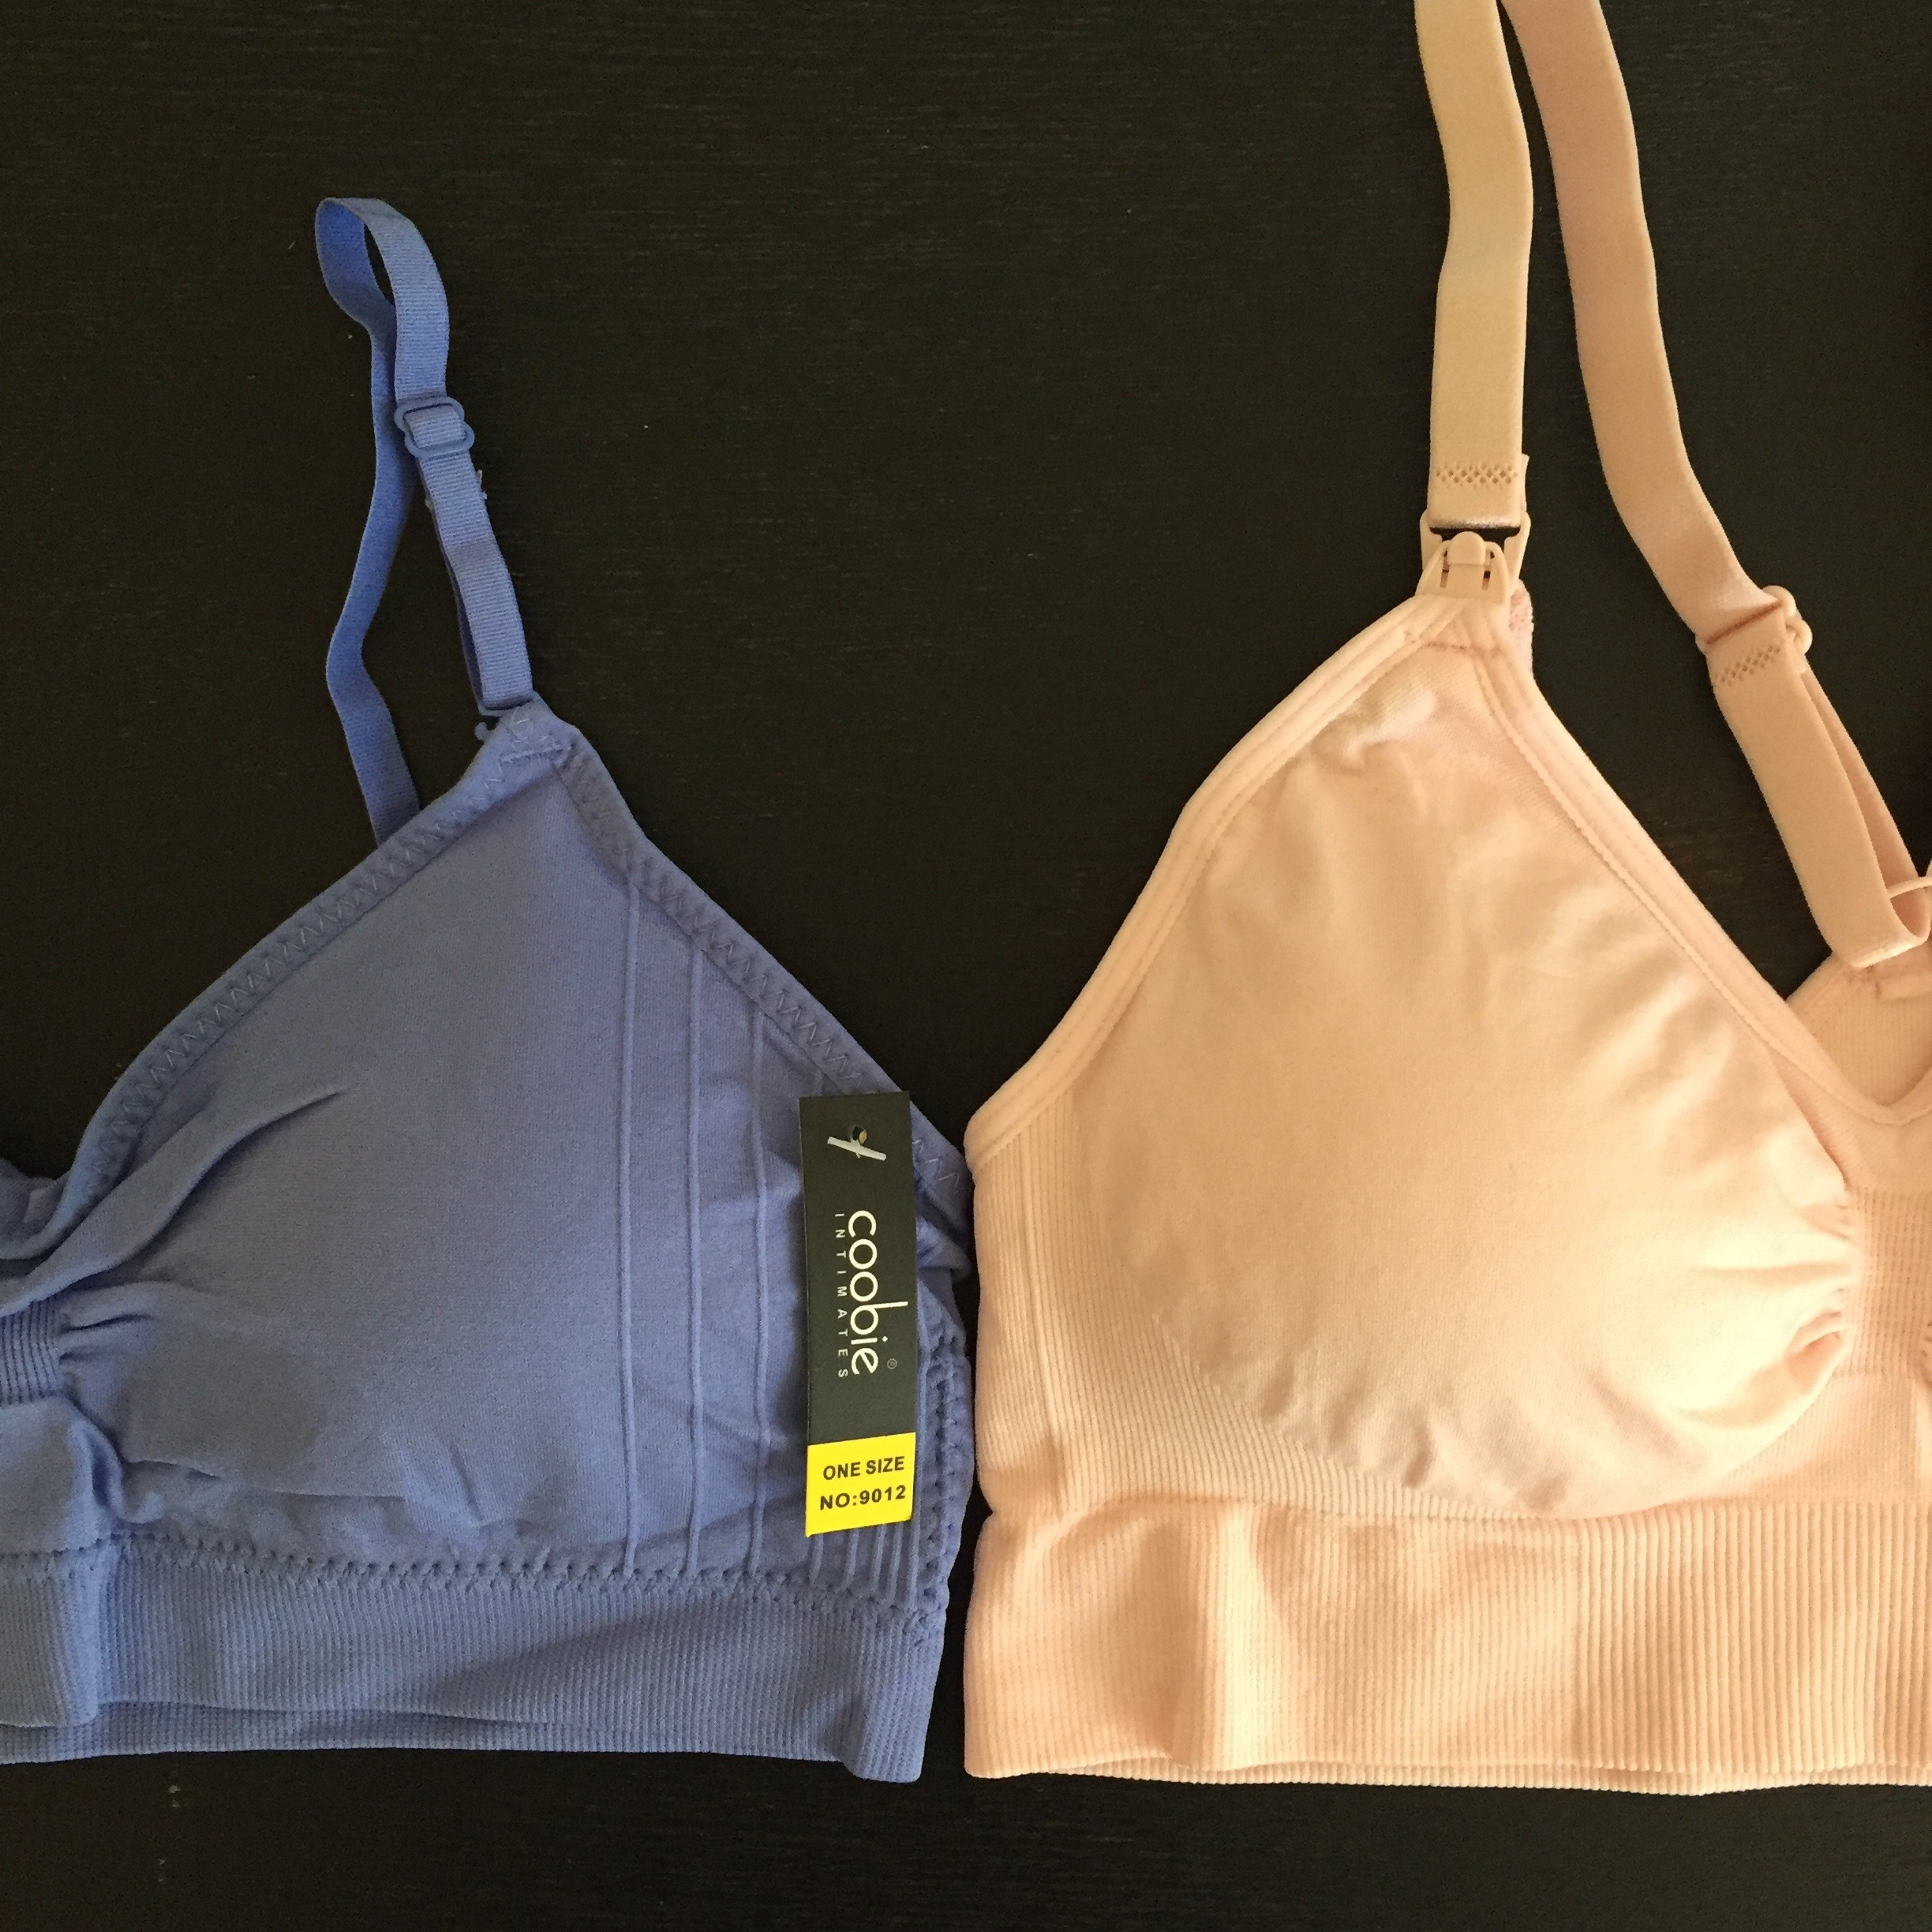 6ae7323490b Coobie Bra SIZING GUIDE. Tap to expand. Add to Wish List